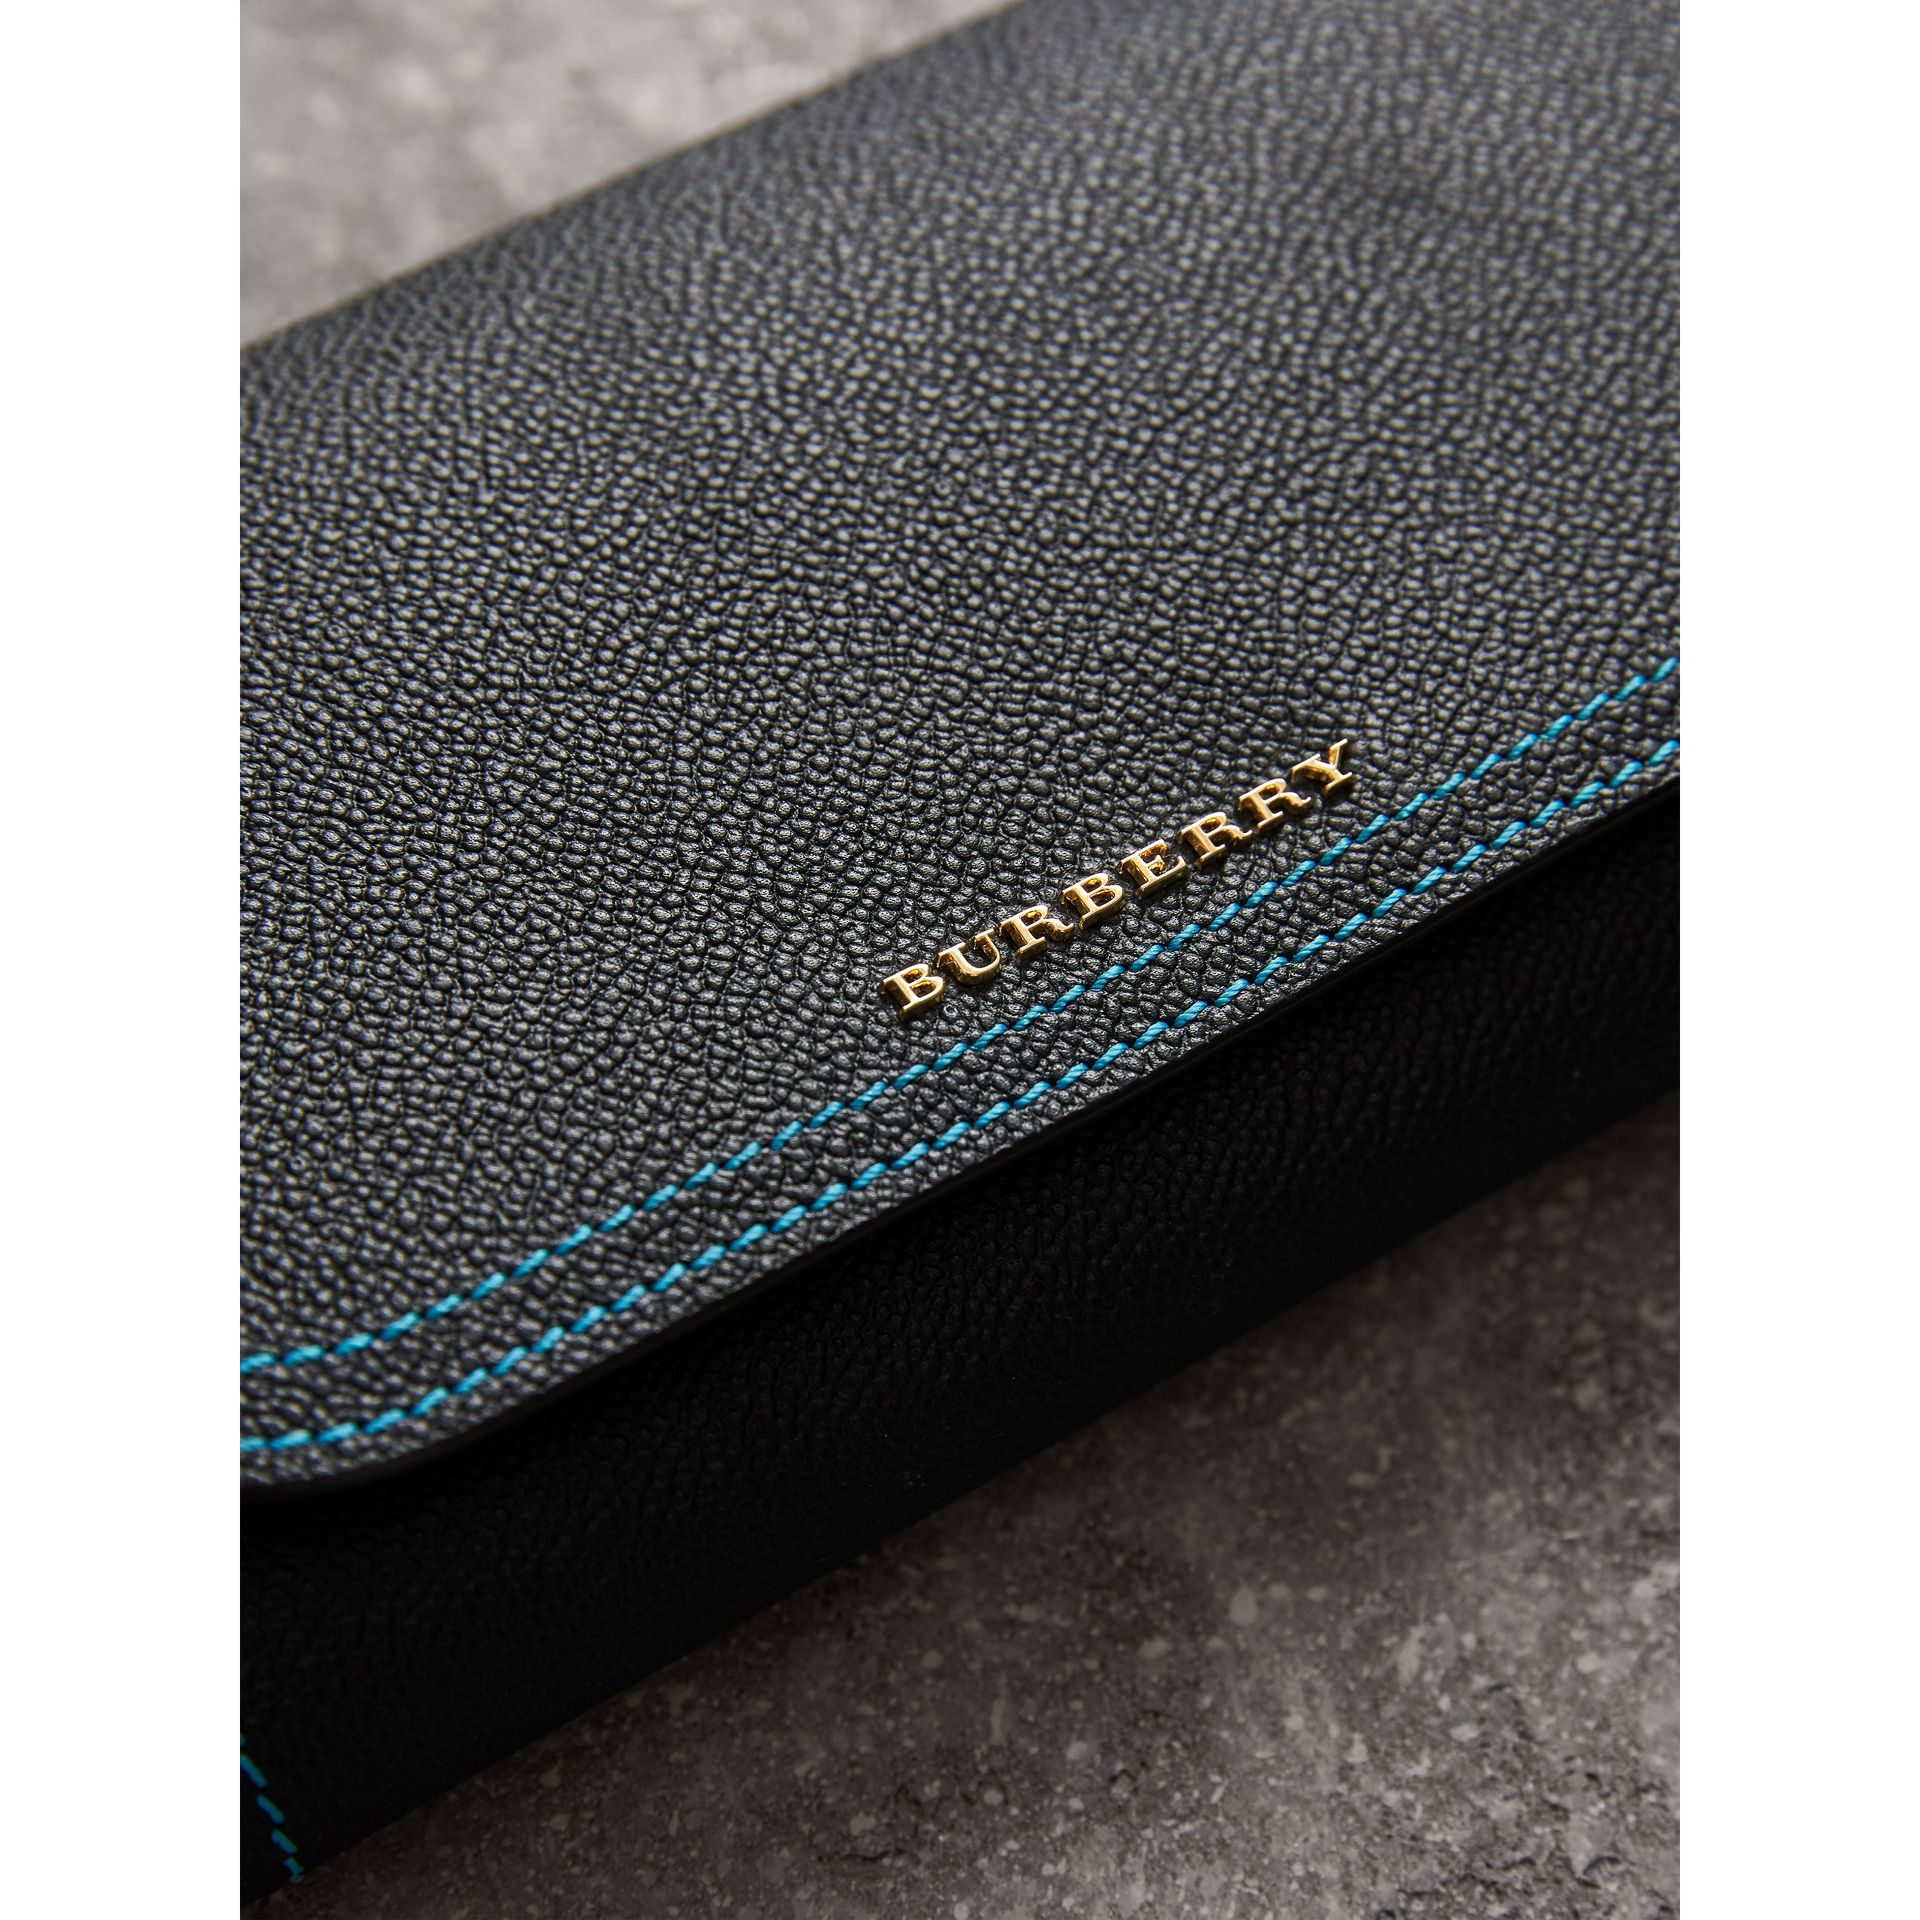 Topstitch Detail Leather Wallet with Detachable Strap in Black/multicolour - Women | Burberry Hong Kong - gallery image 1